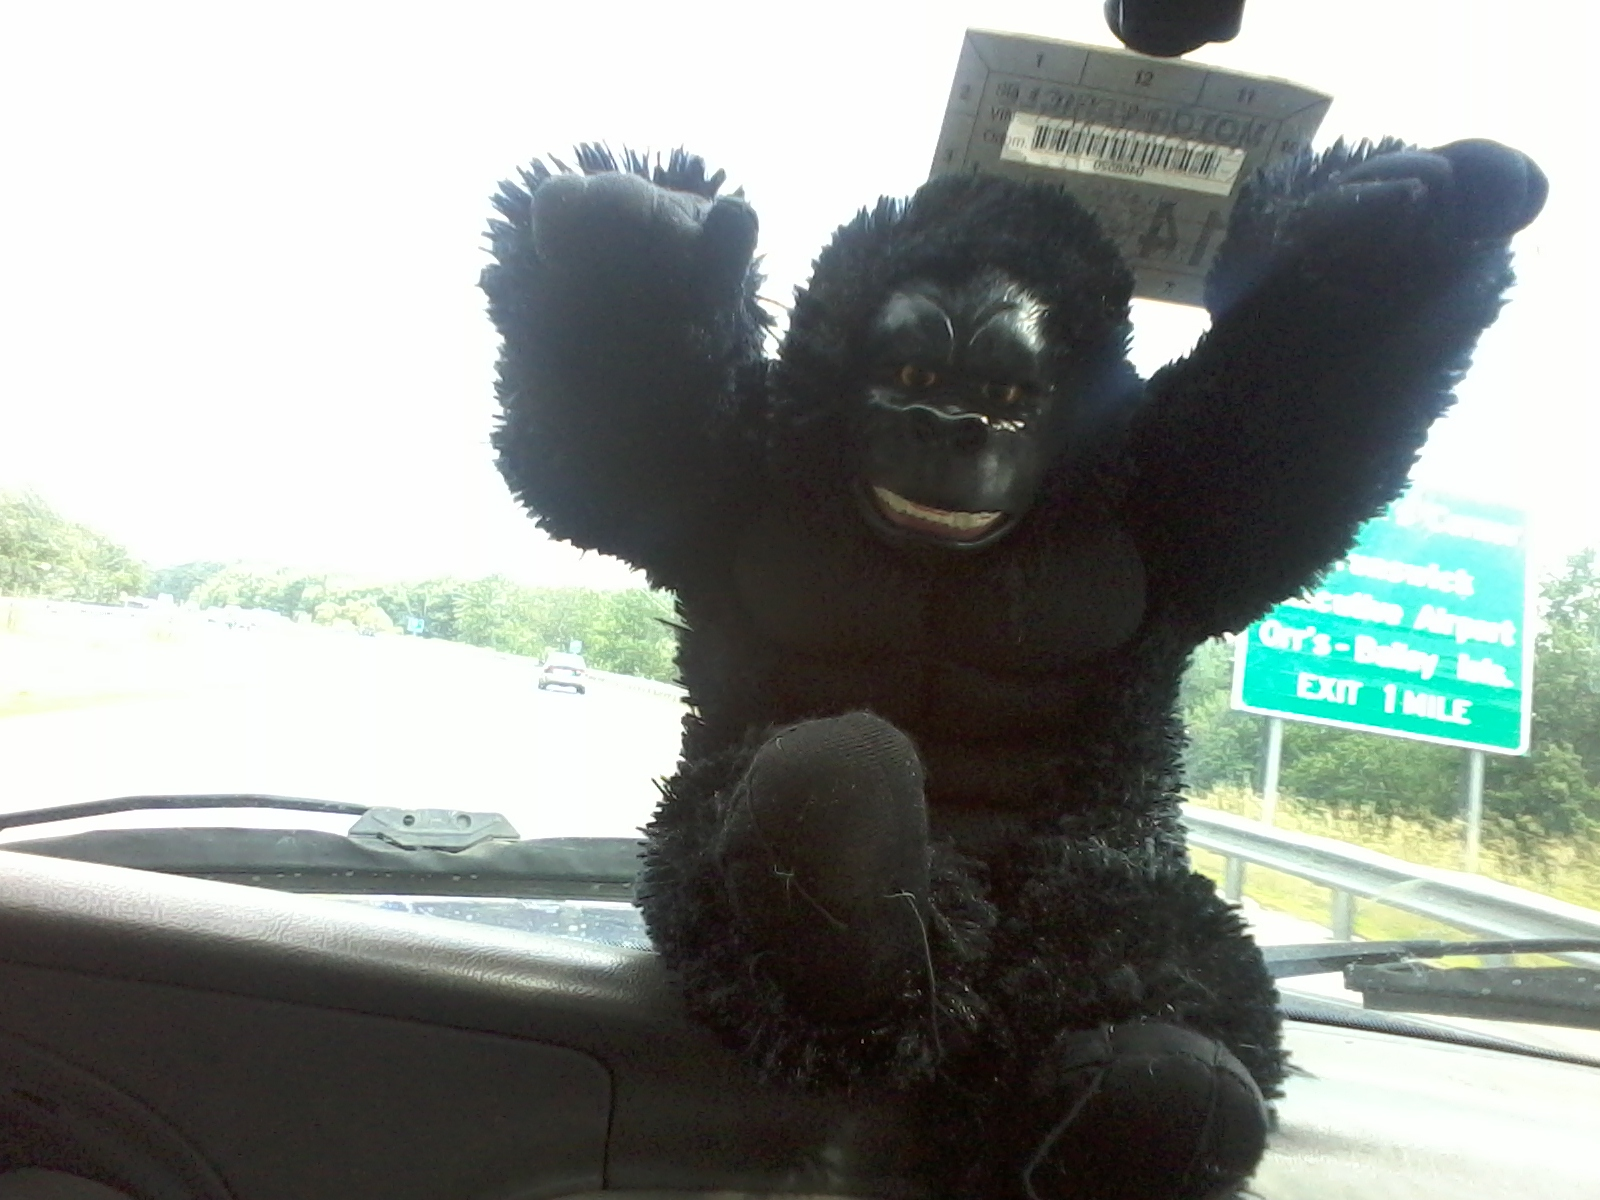 Caption: Maybe the gorilla taught the person to sign.., Credit: Susan Cook